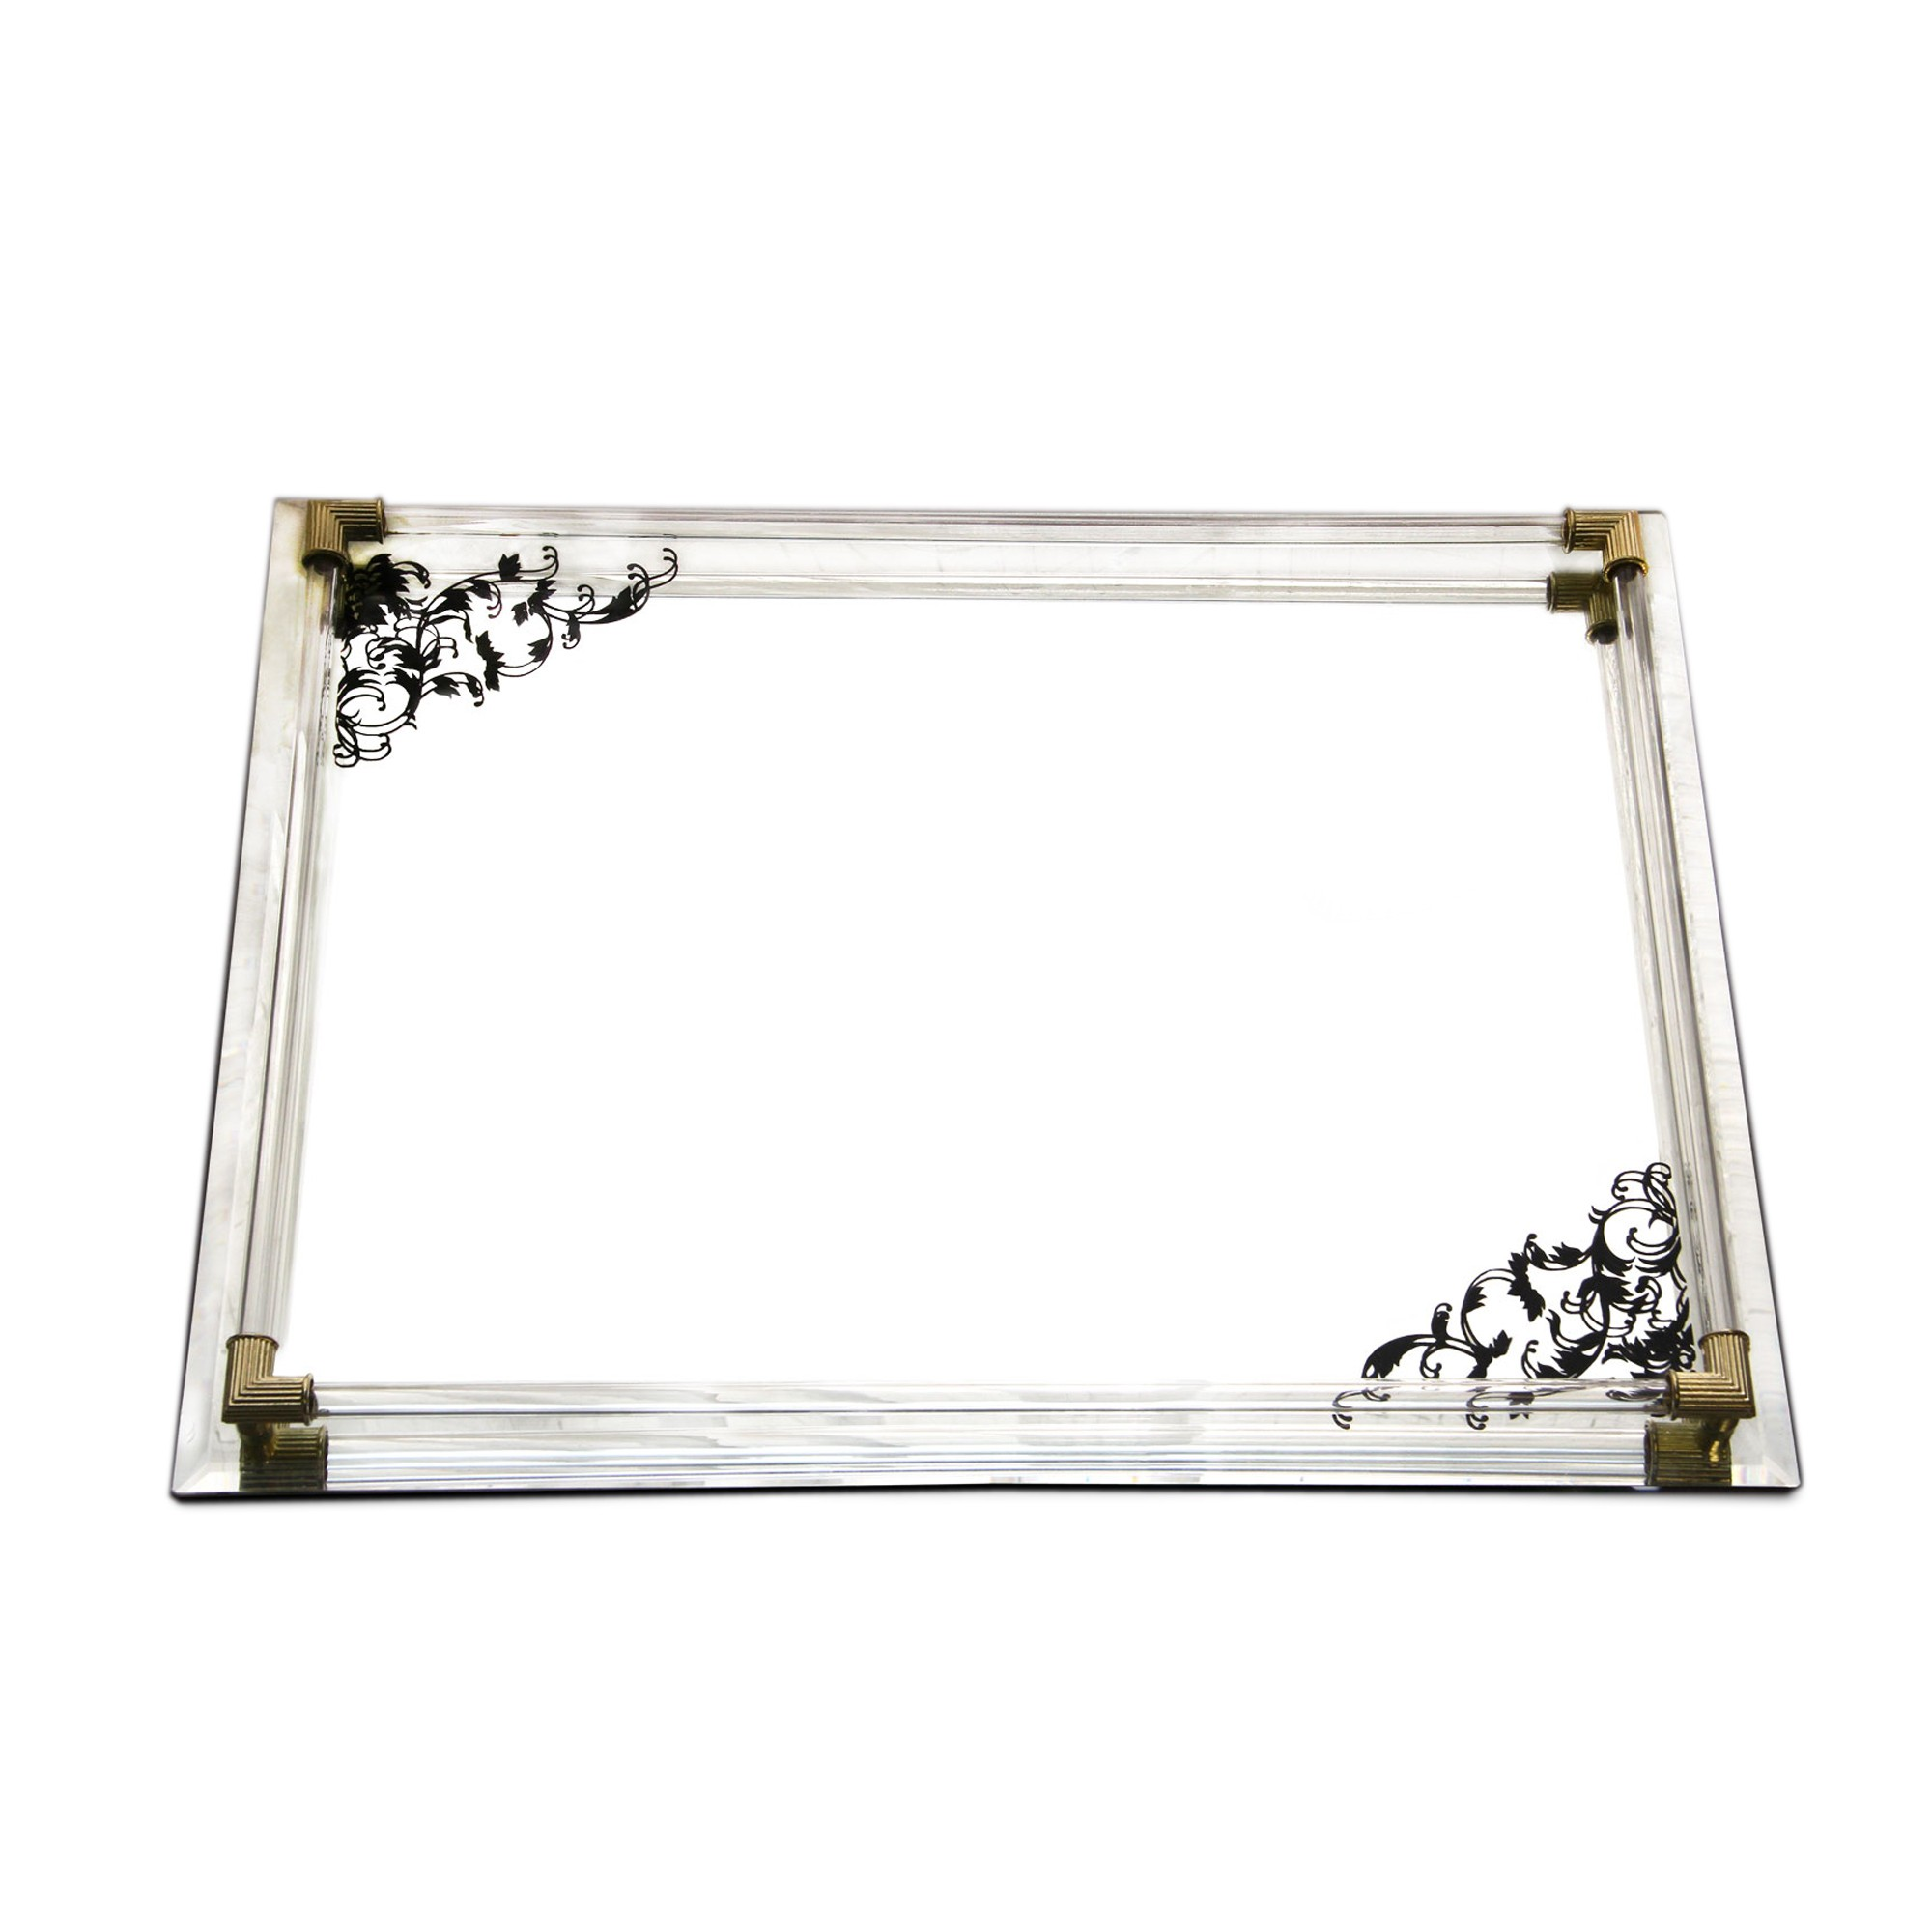 American Atelier Mirror Vanity Tray with Blackscrolls & Gold Accents-12x9""